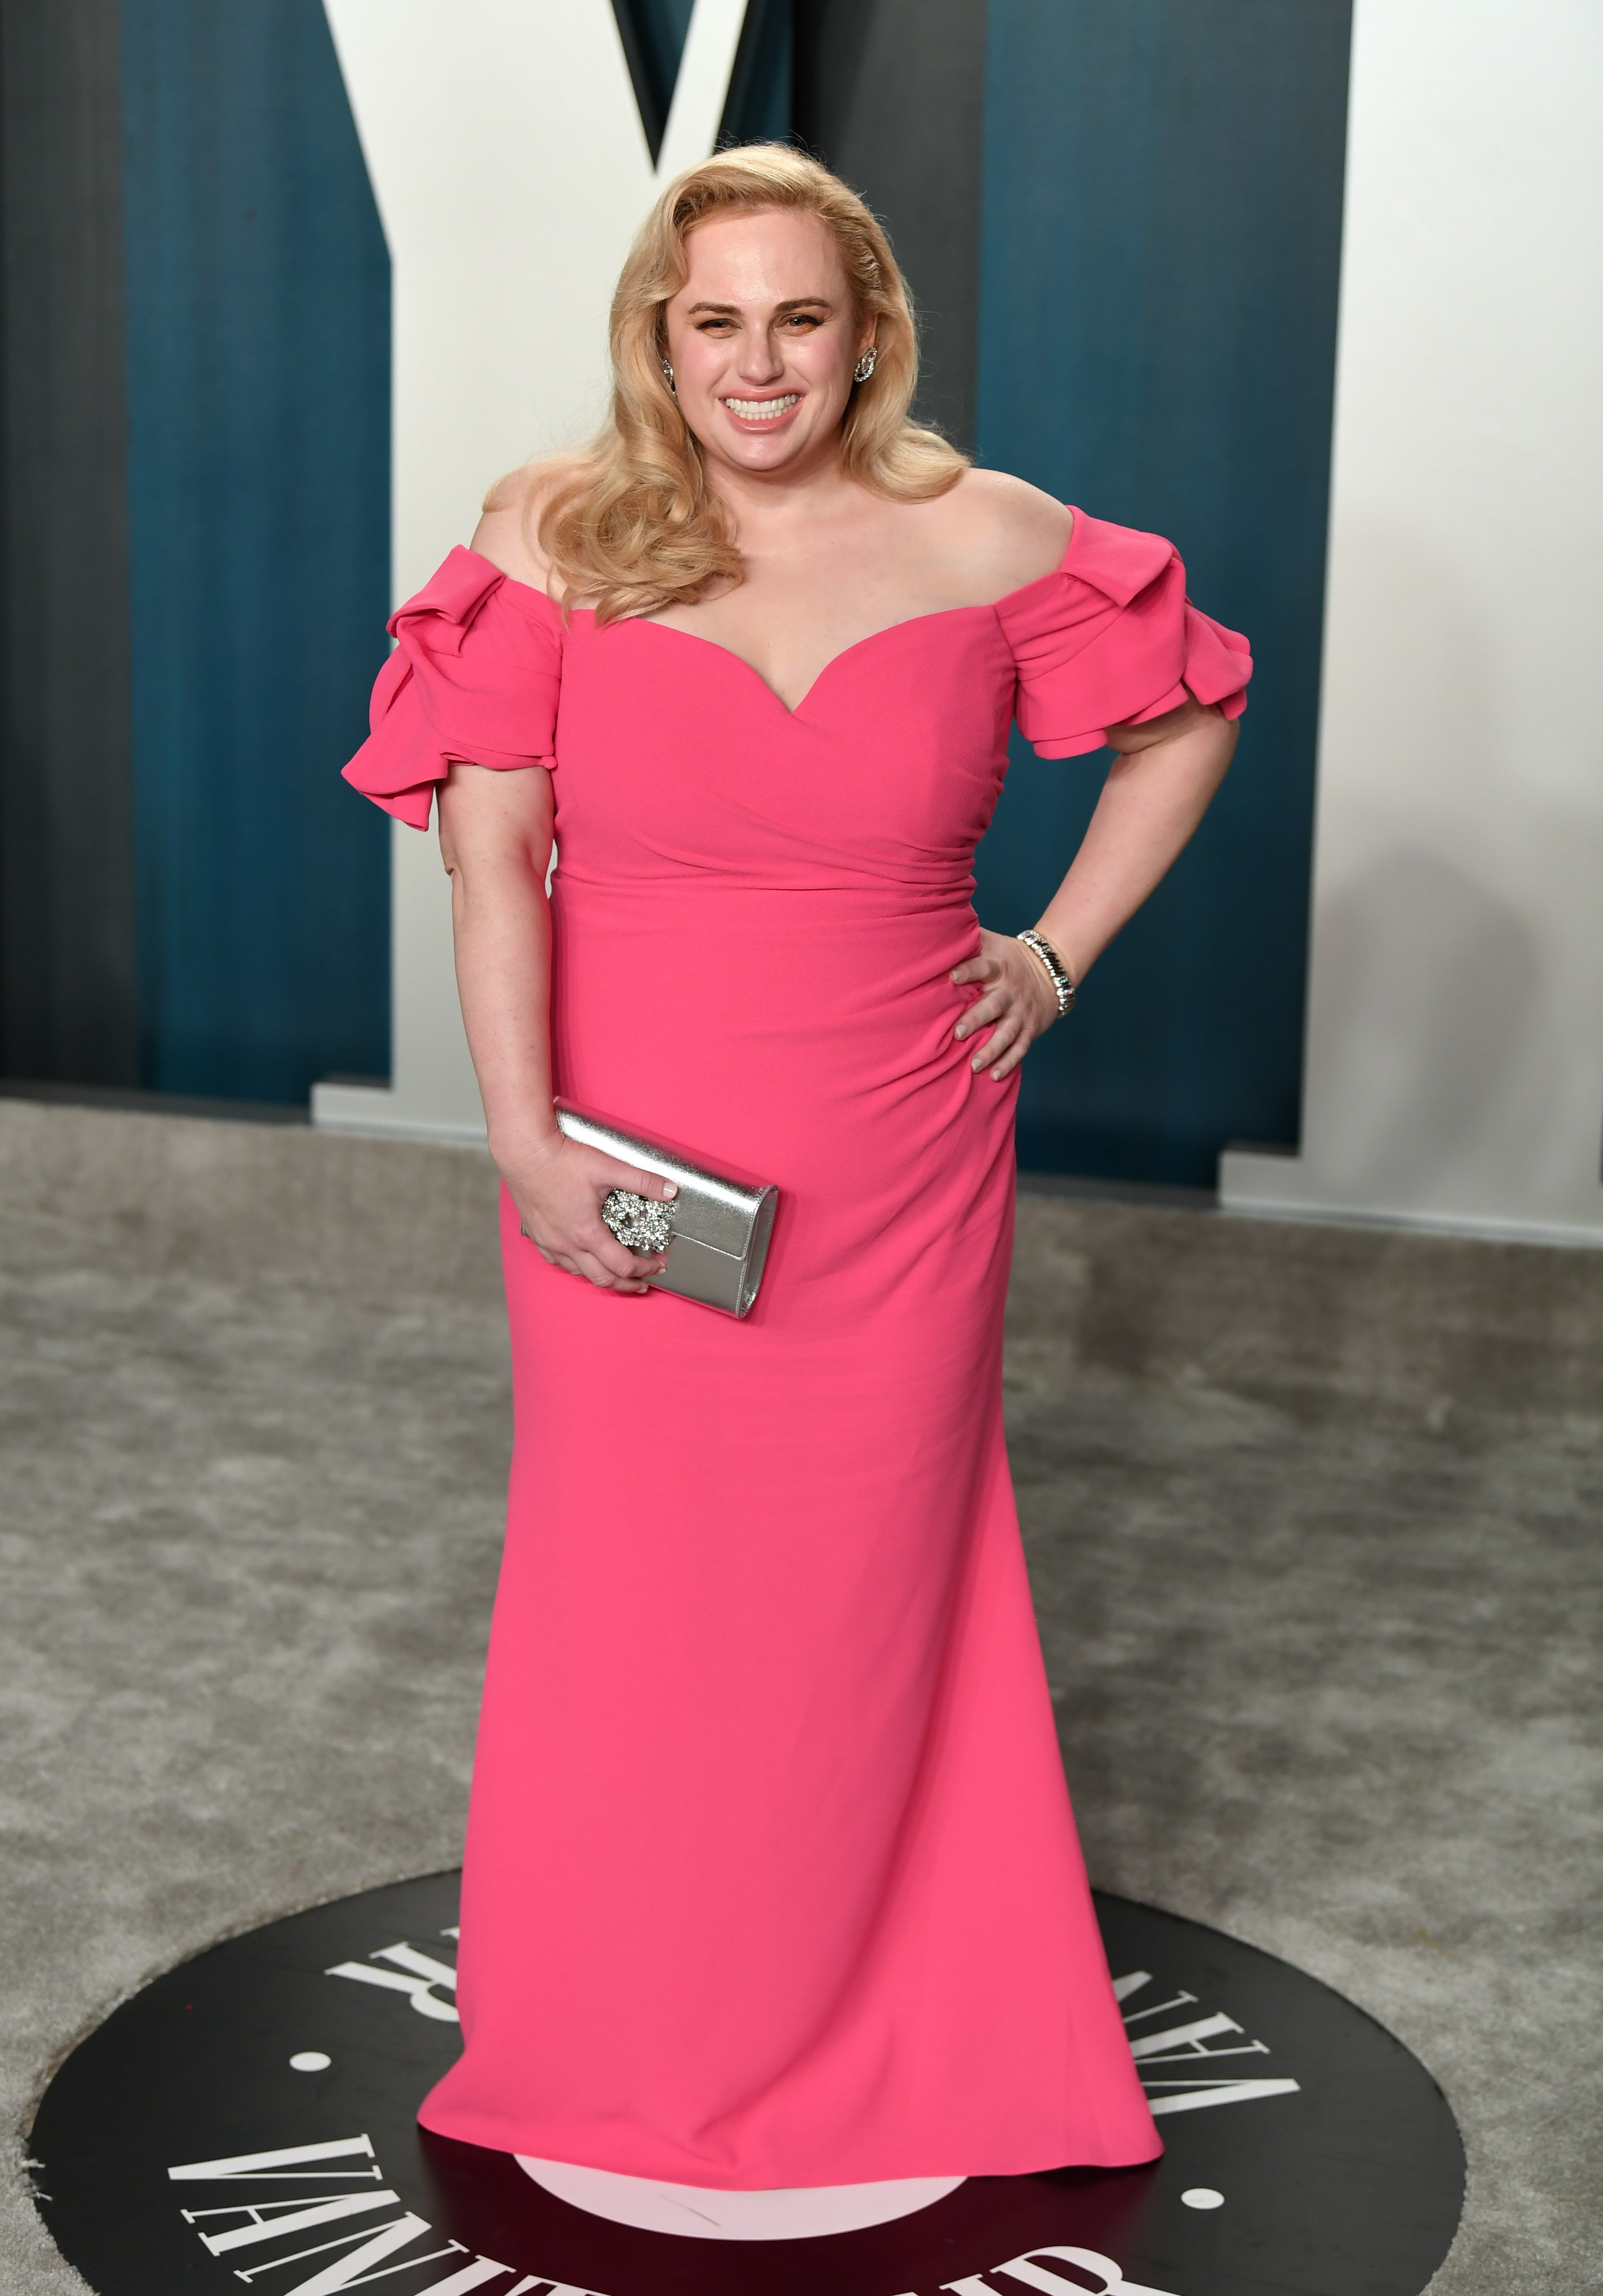 Rebel Wilson attends the Vanity Fair Oscar Party in Beverly Hills, California on February 9, 2020 | Photo: Getty Images